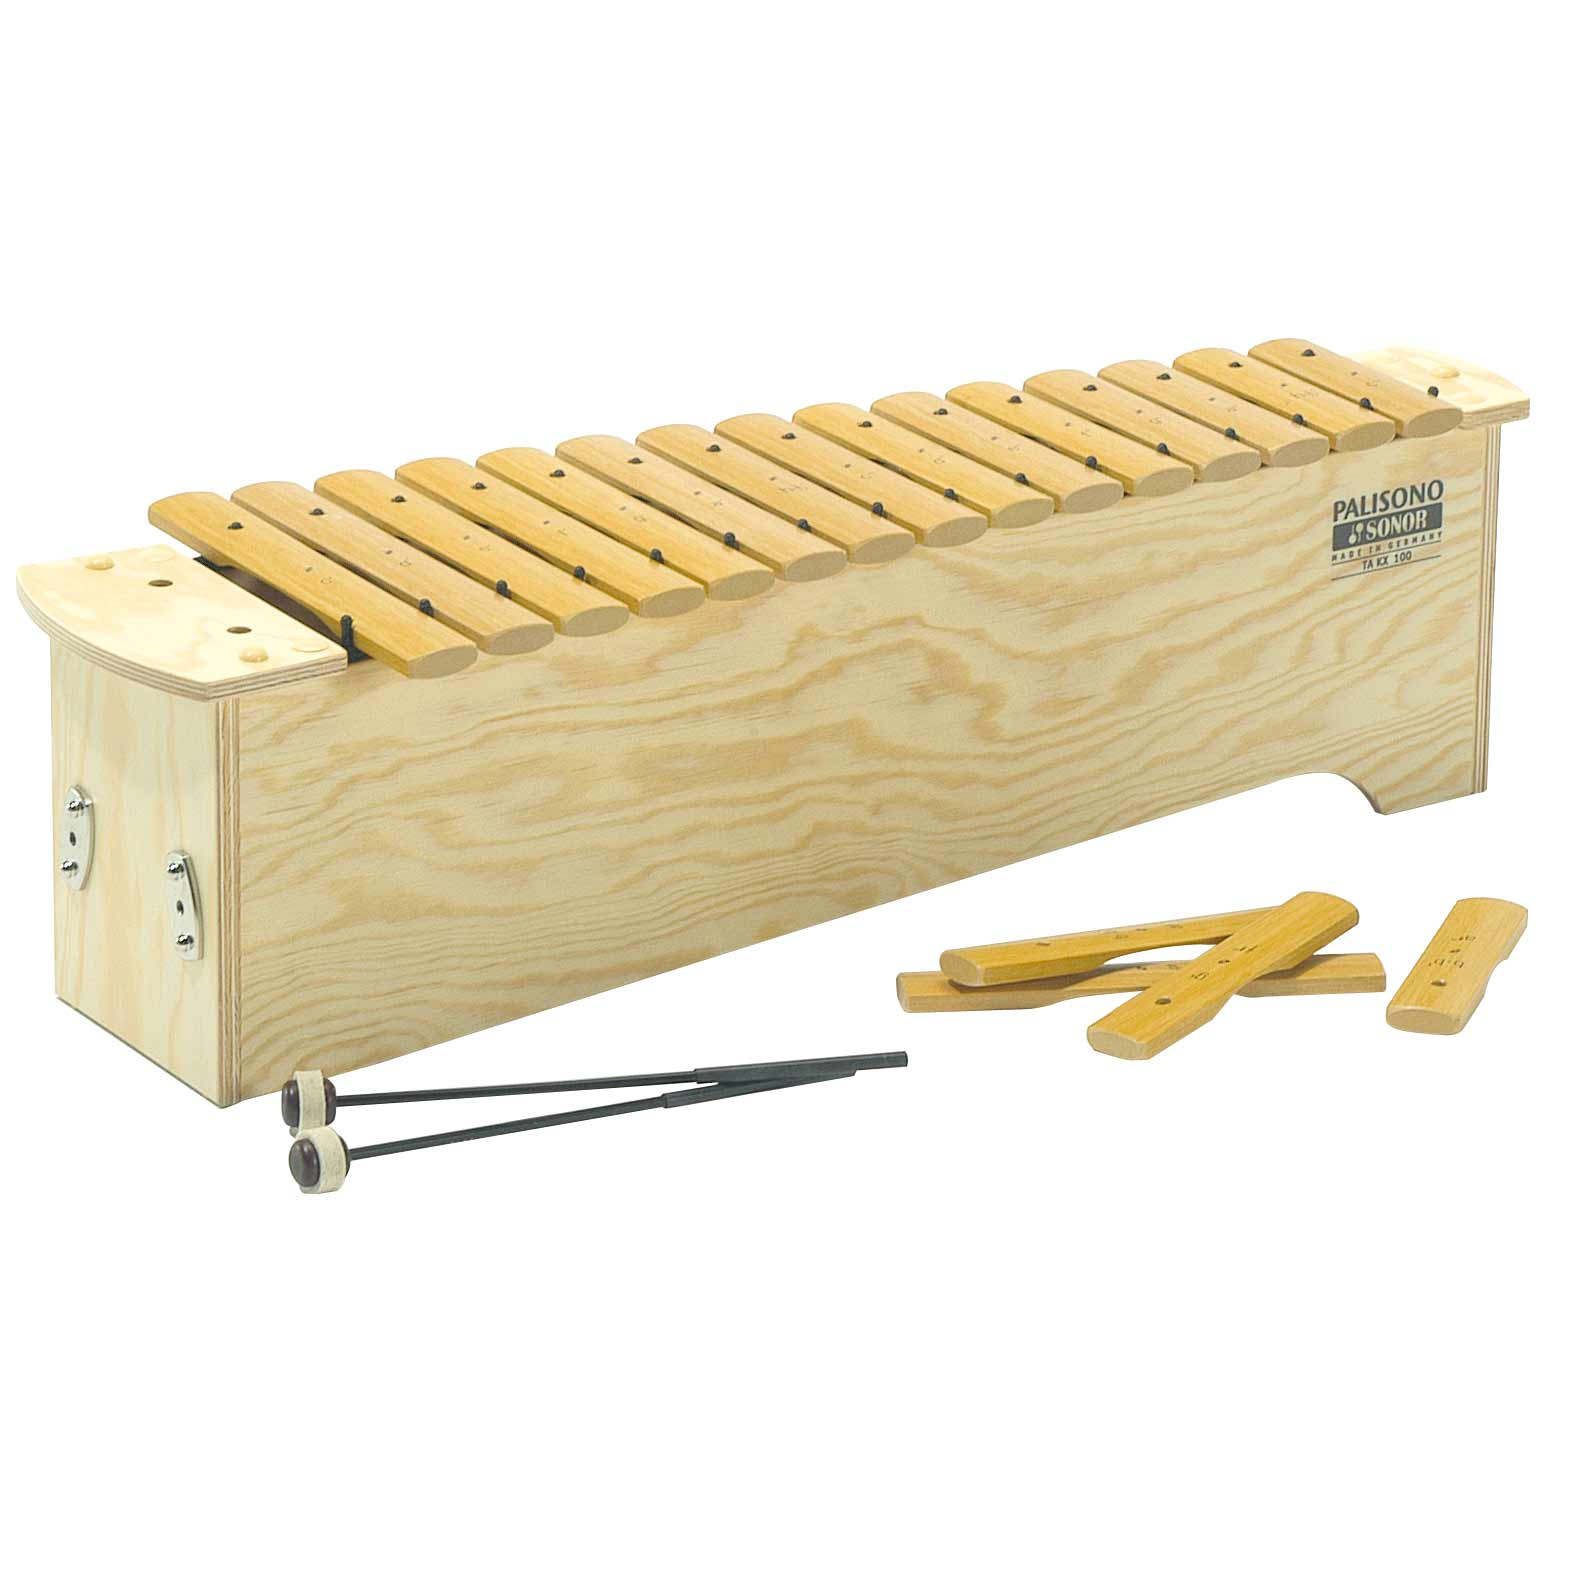 Sonor Orff Palisono Tenor-Alto Xylophone with Mallets